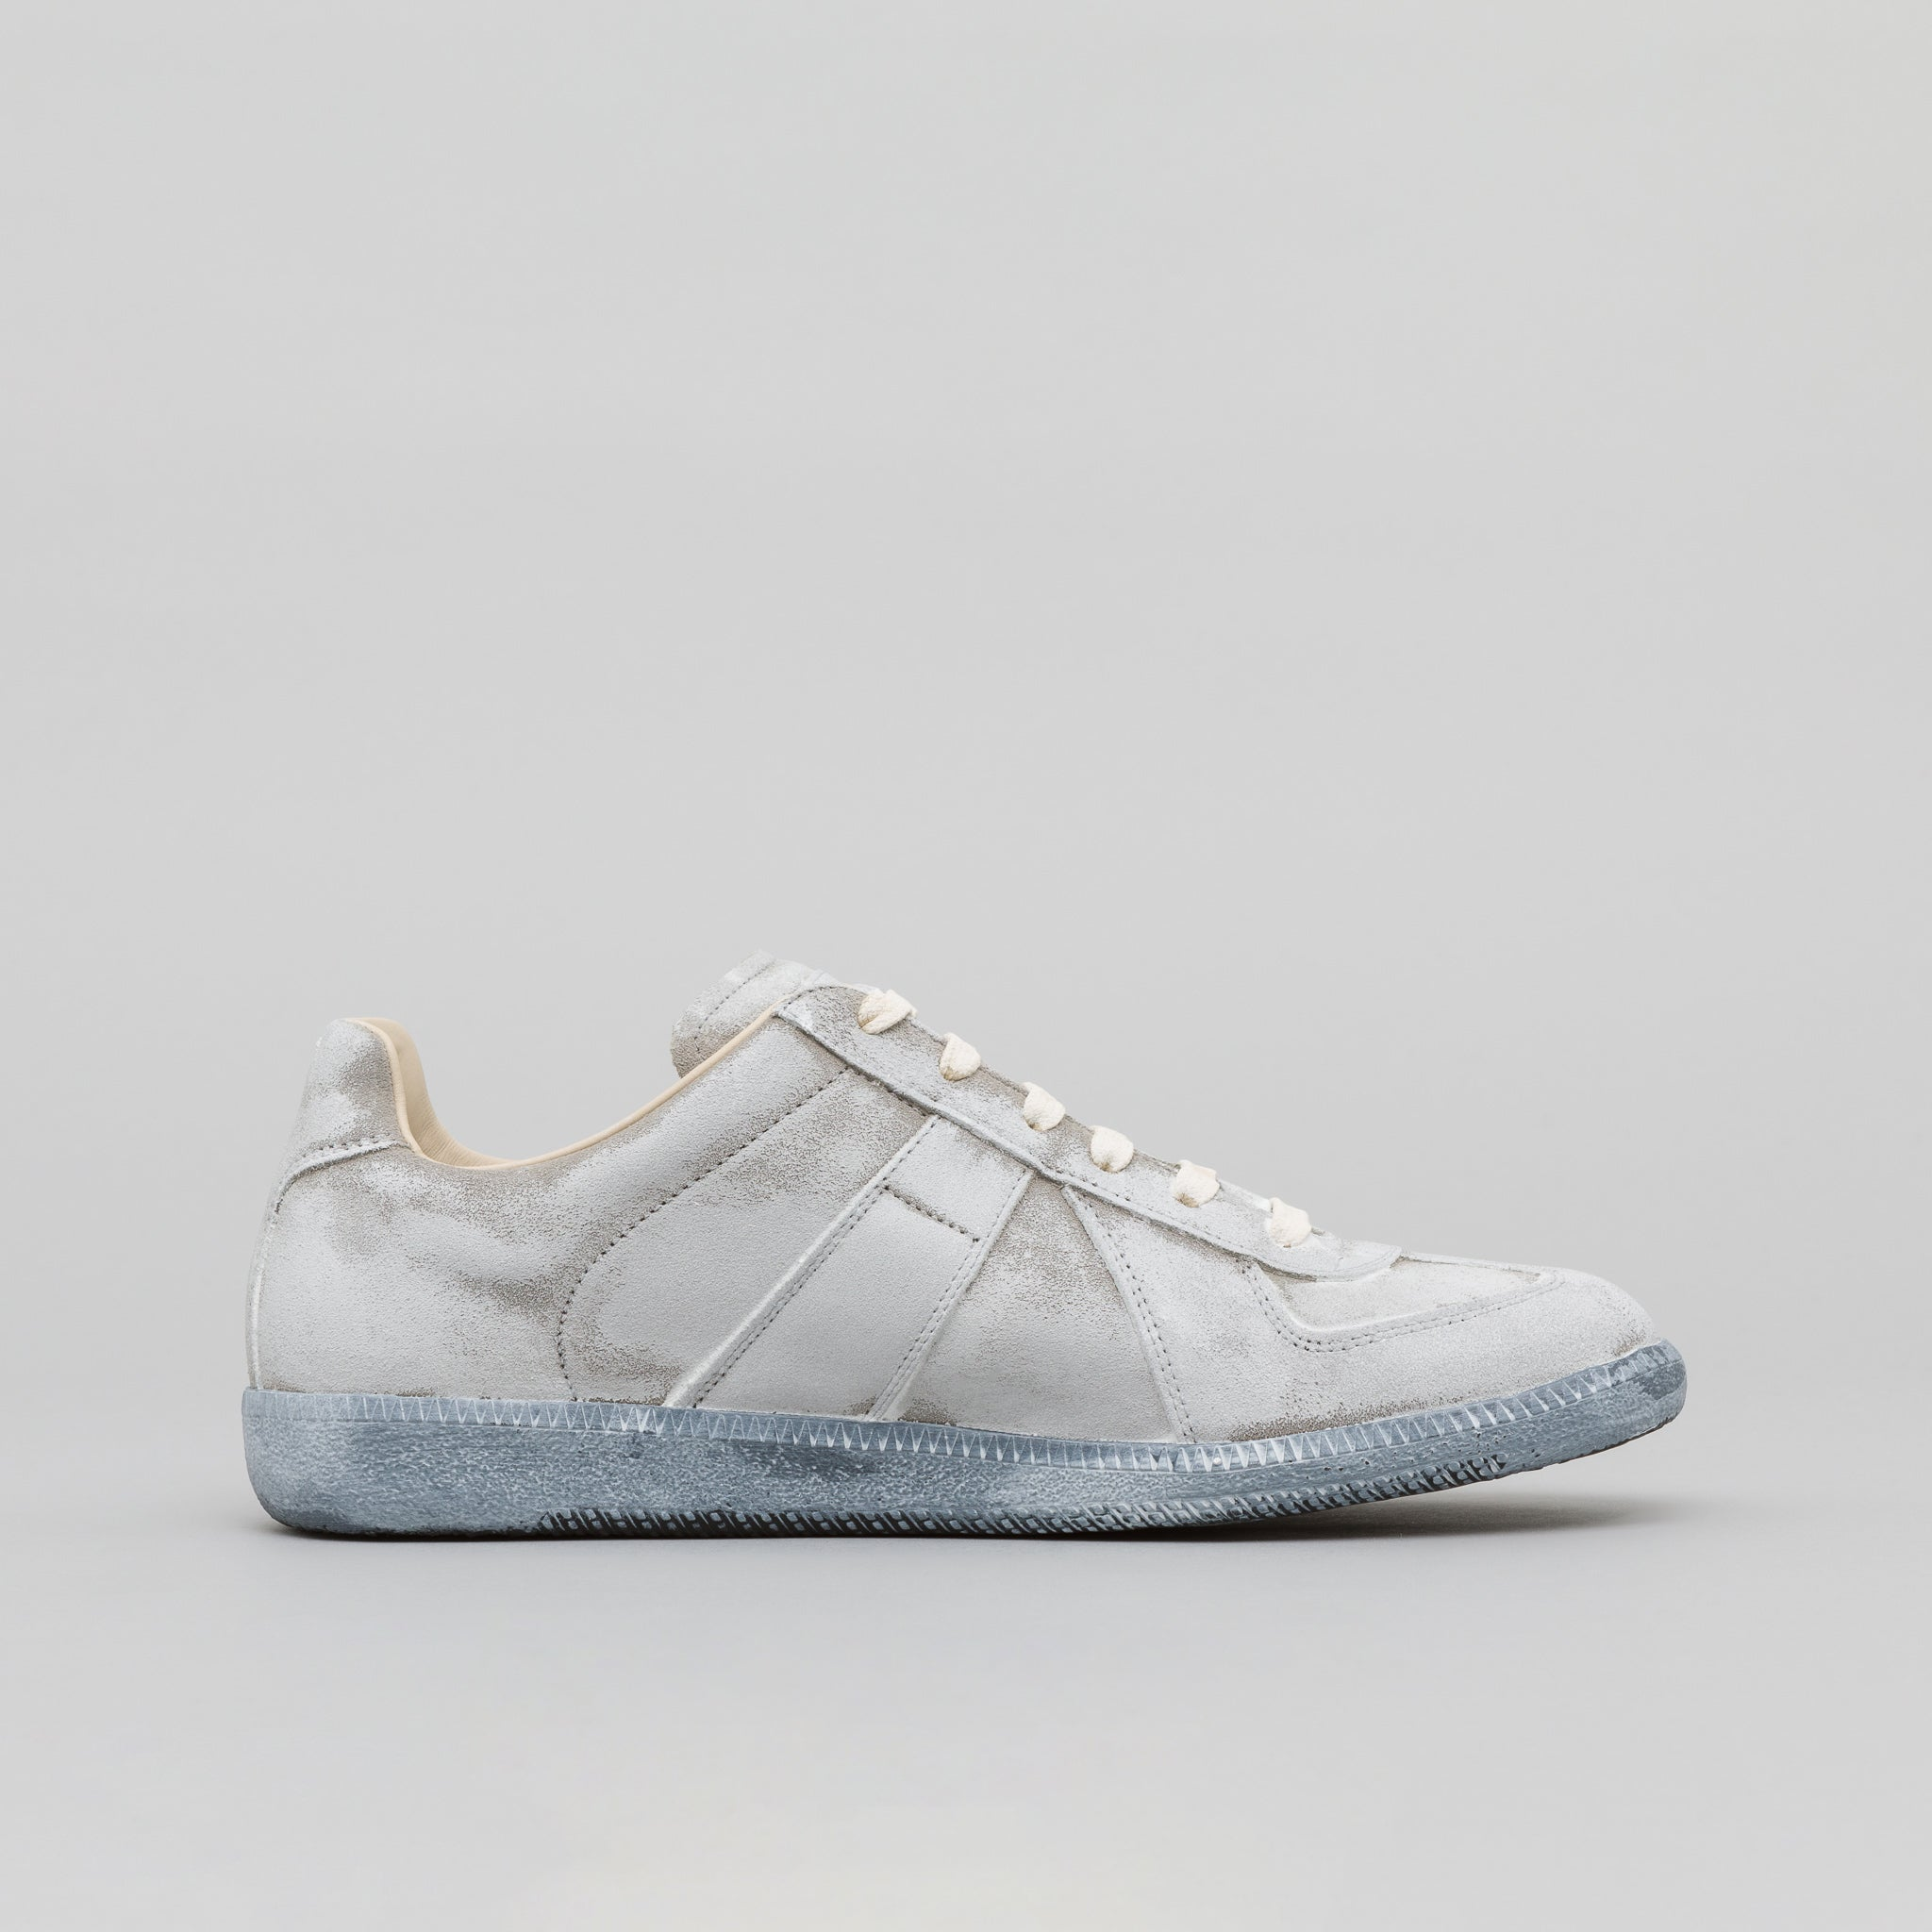 Replica Sneaker in Painted White Leather